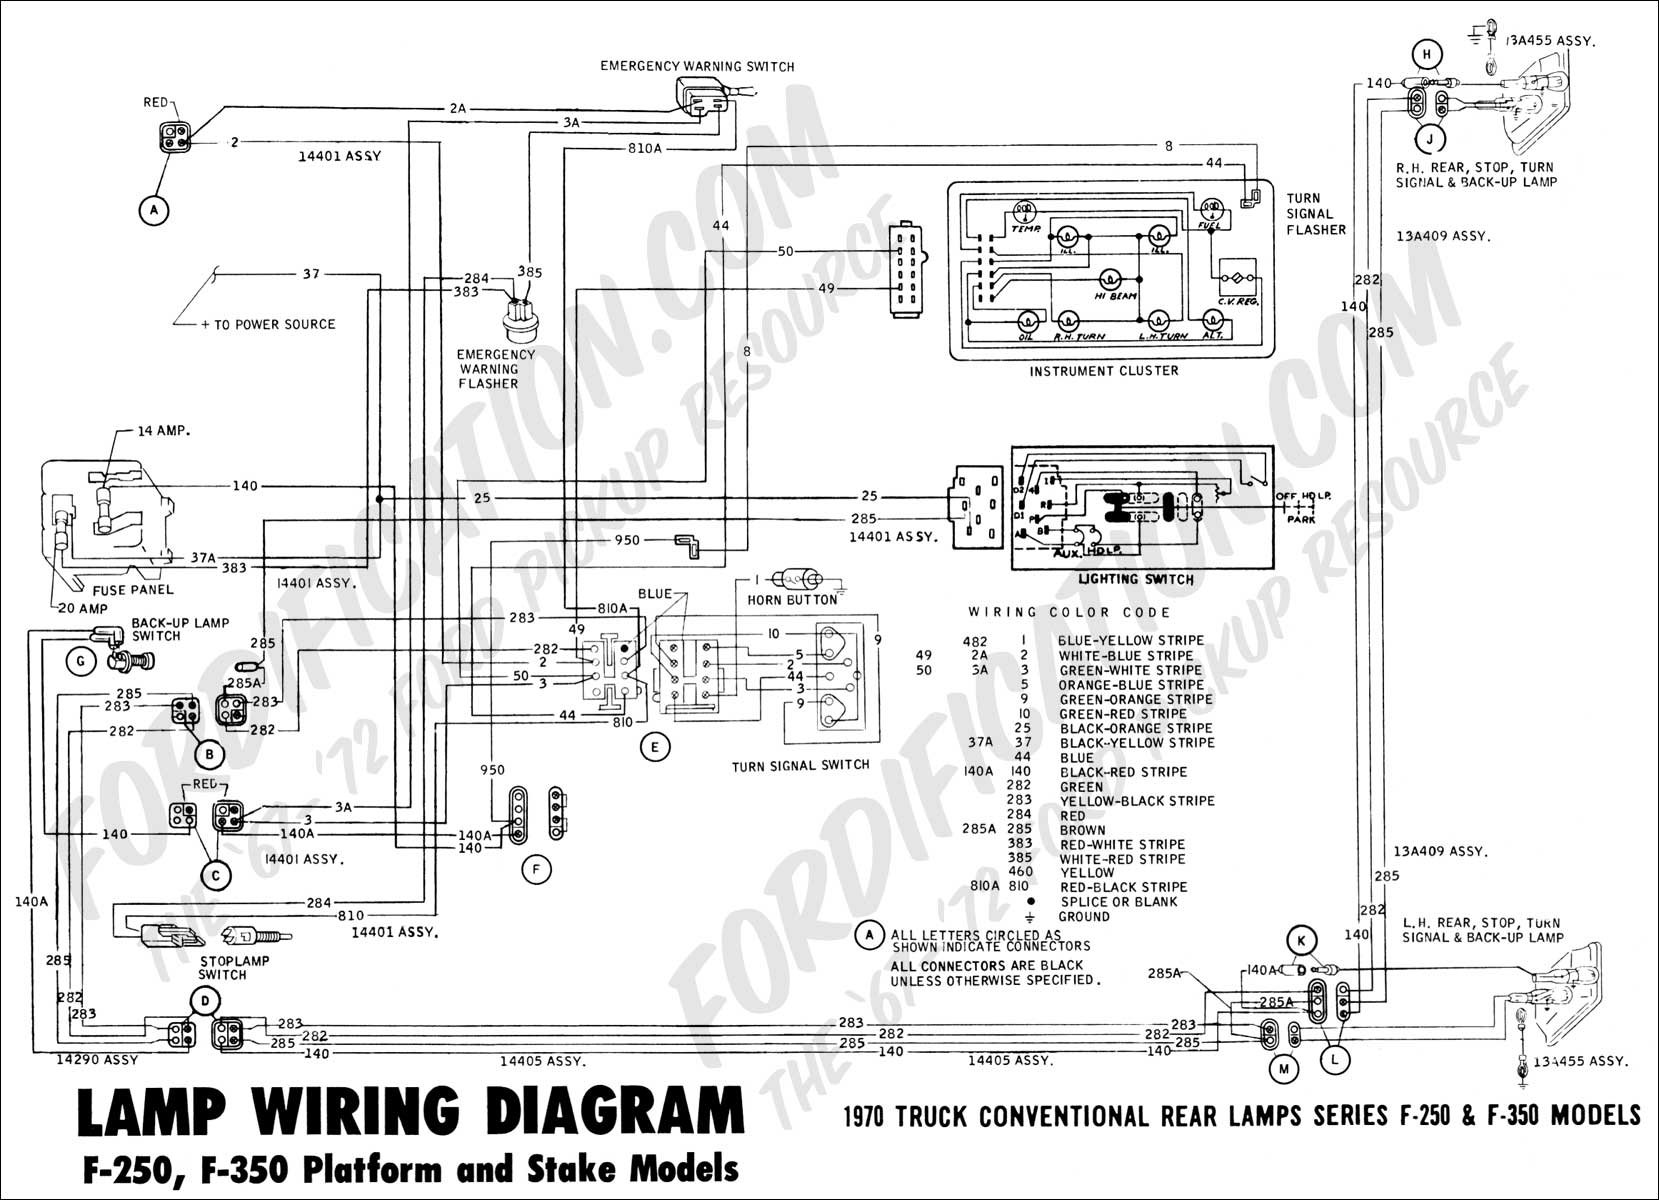 ford truck technical drawings and schematics - section h ... 1988 ford f700 wiring diagram